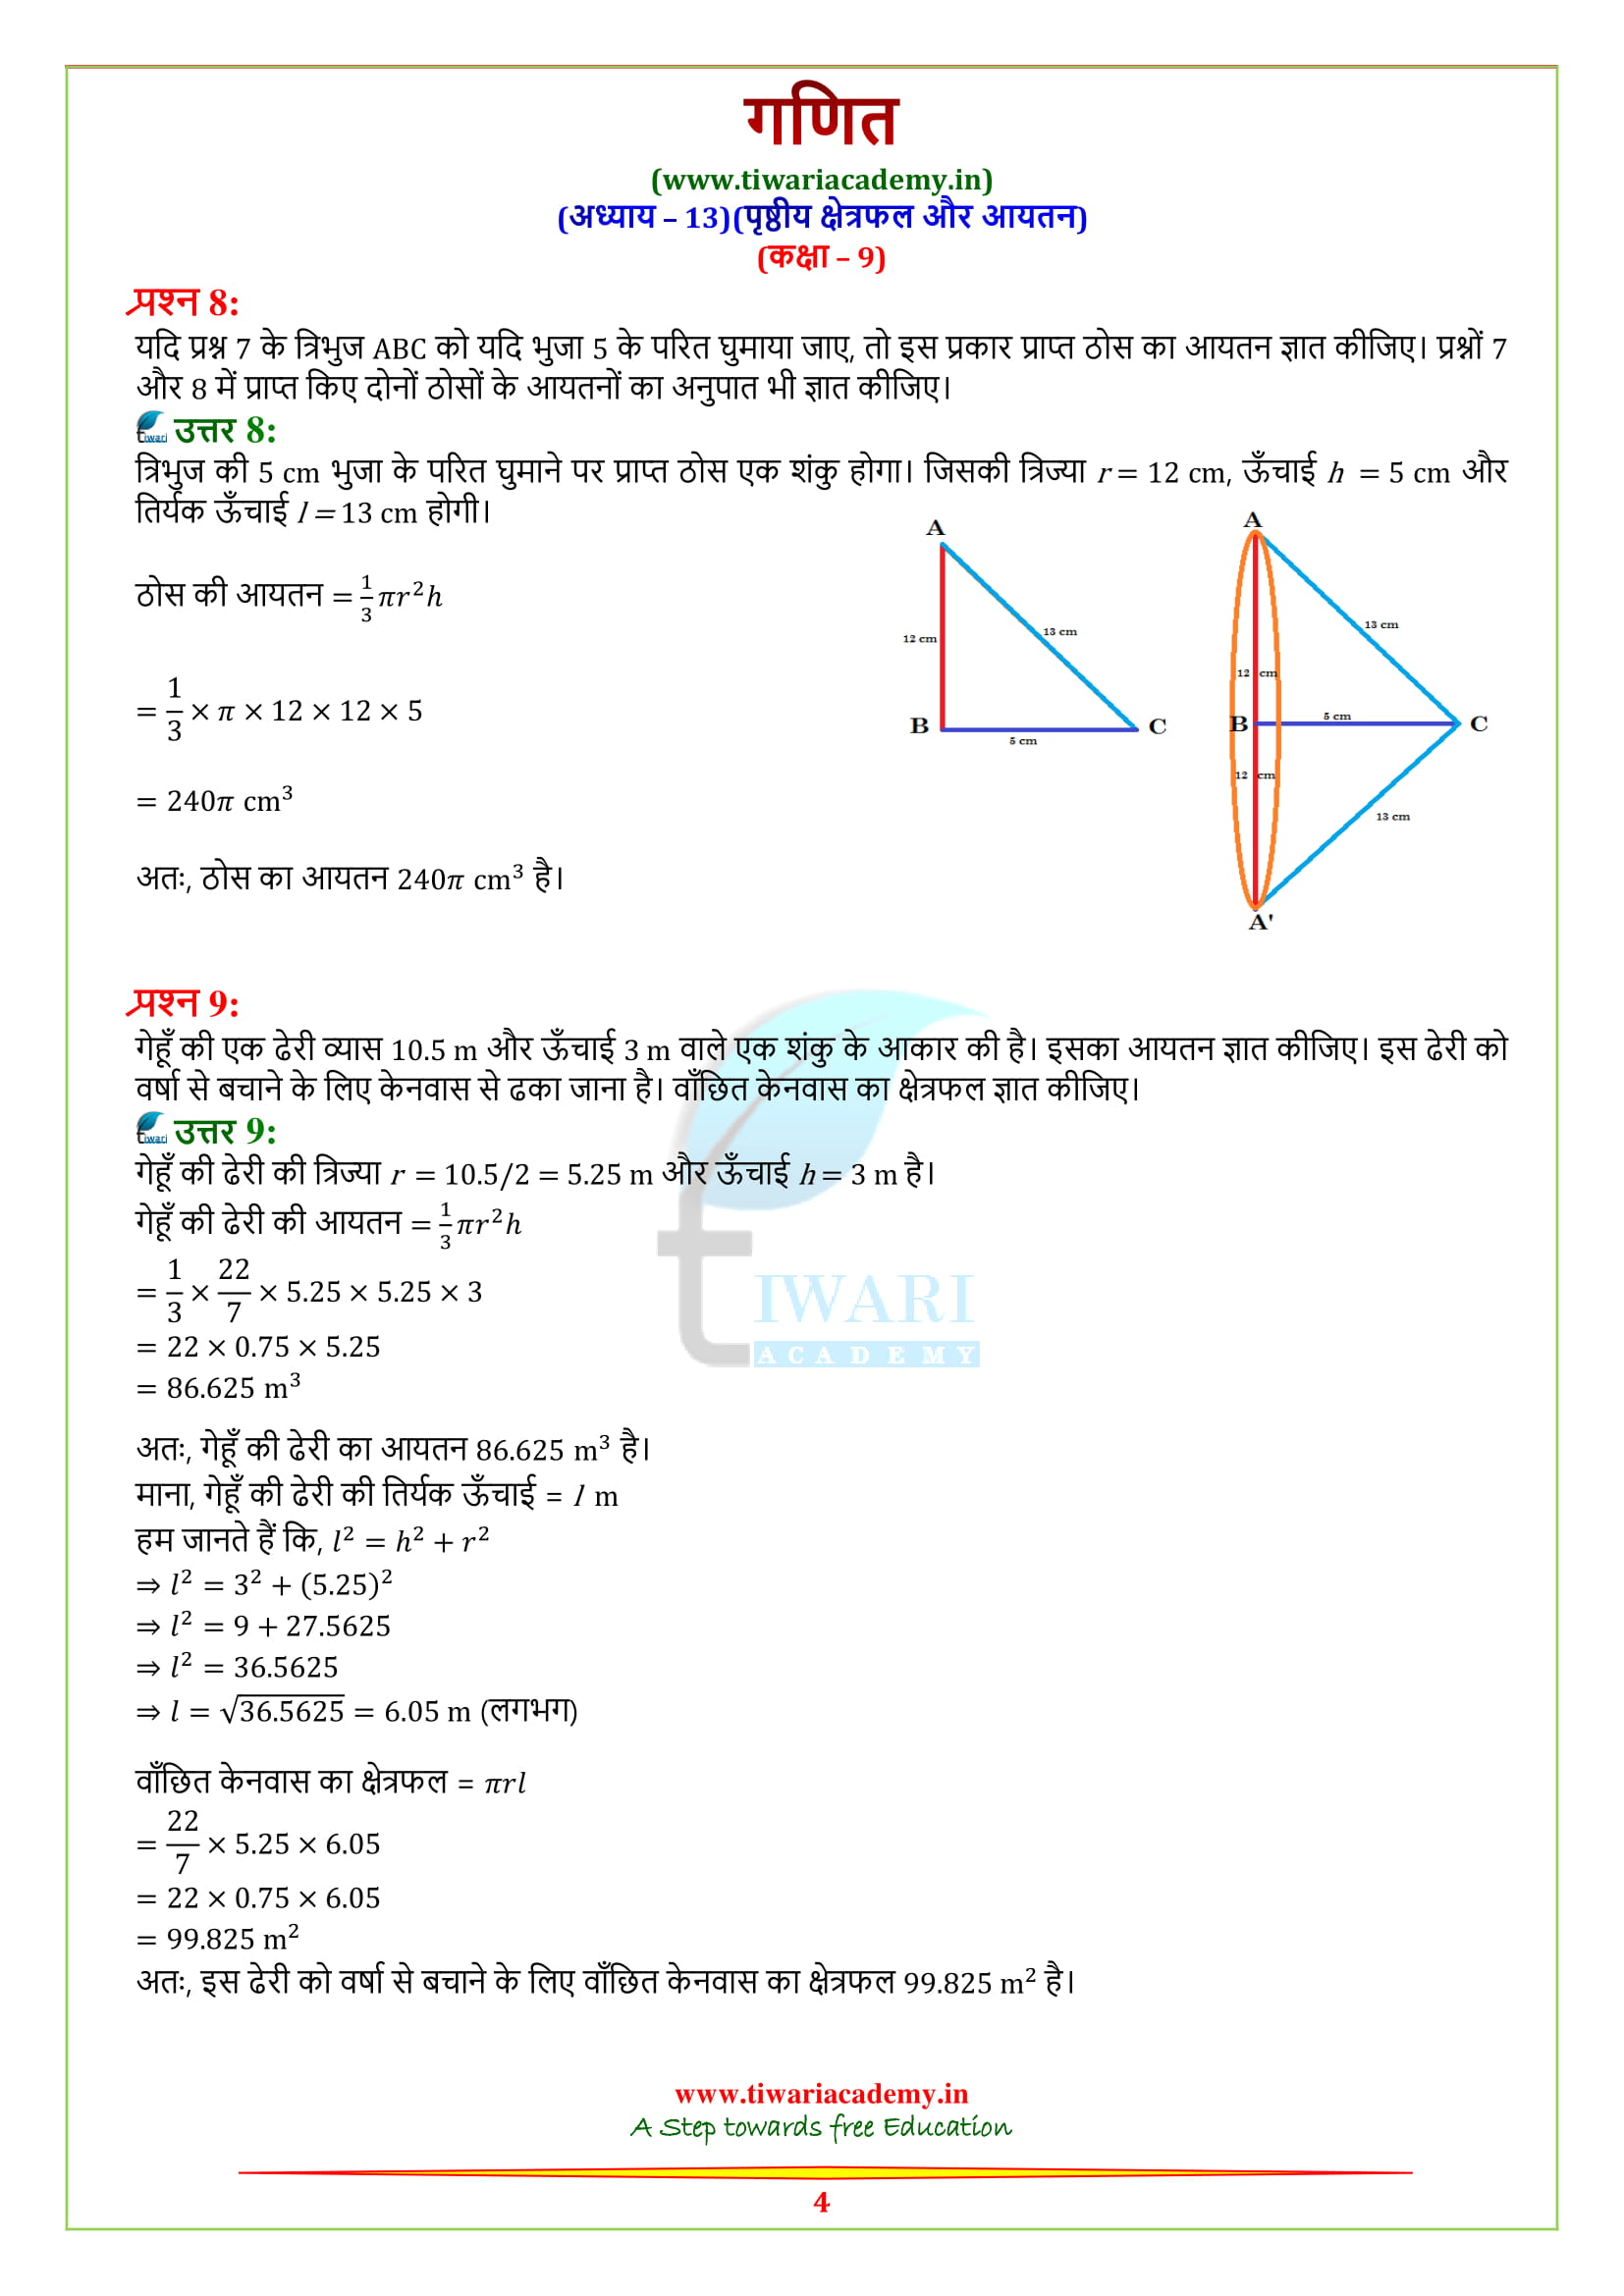 NCERT Solutions for class 9 Maths Exercise 13.7 all question answers guide.